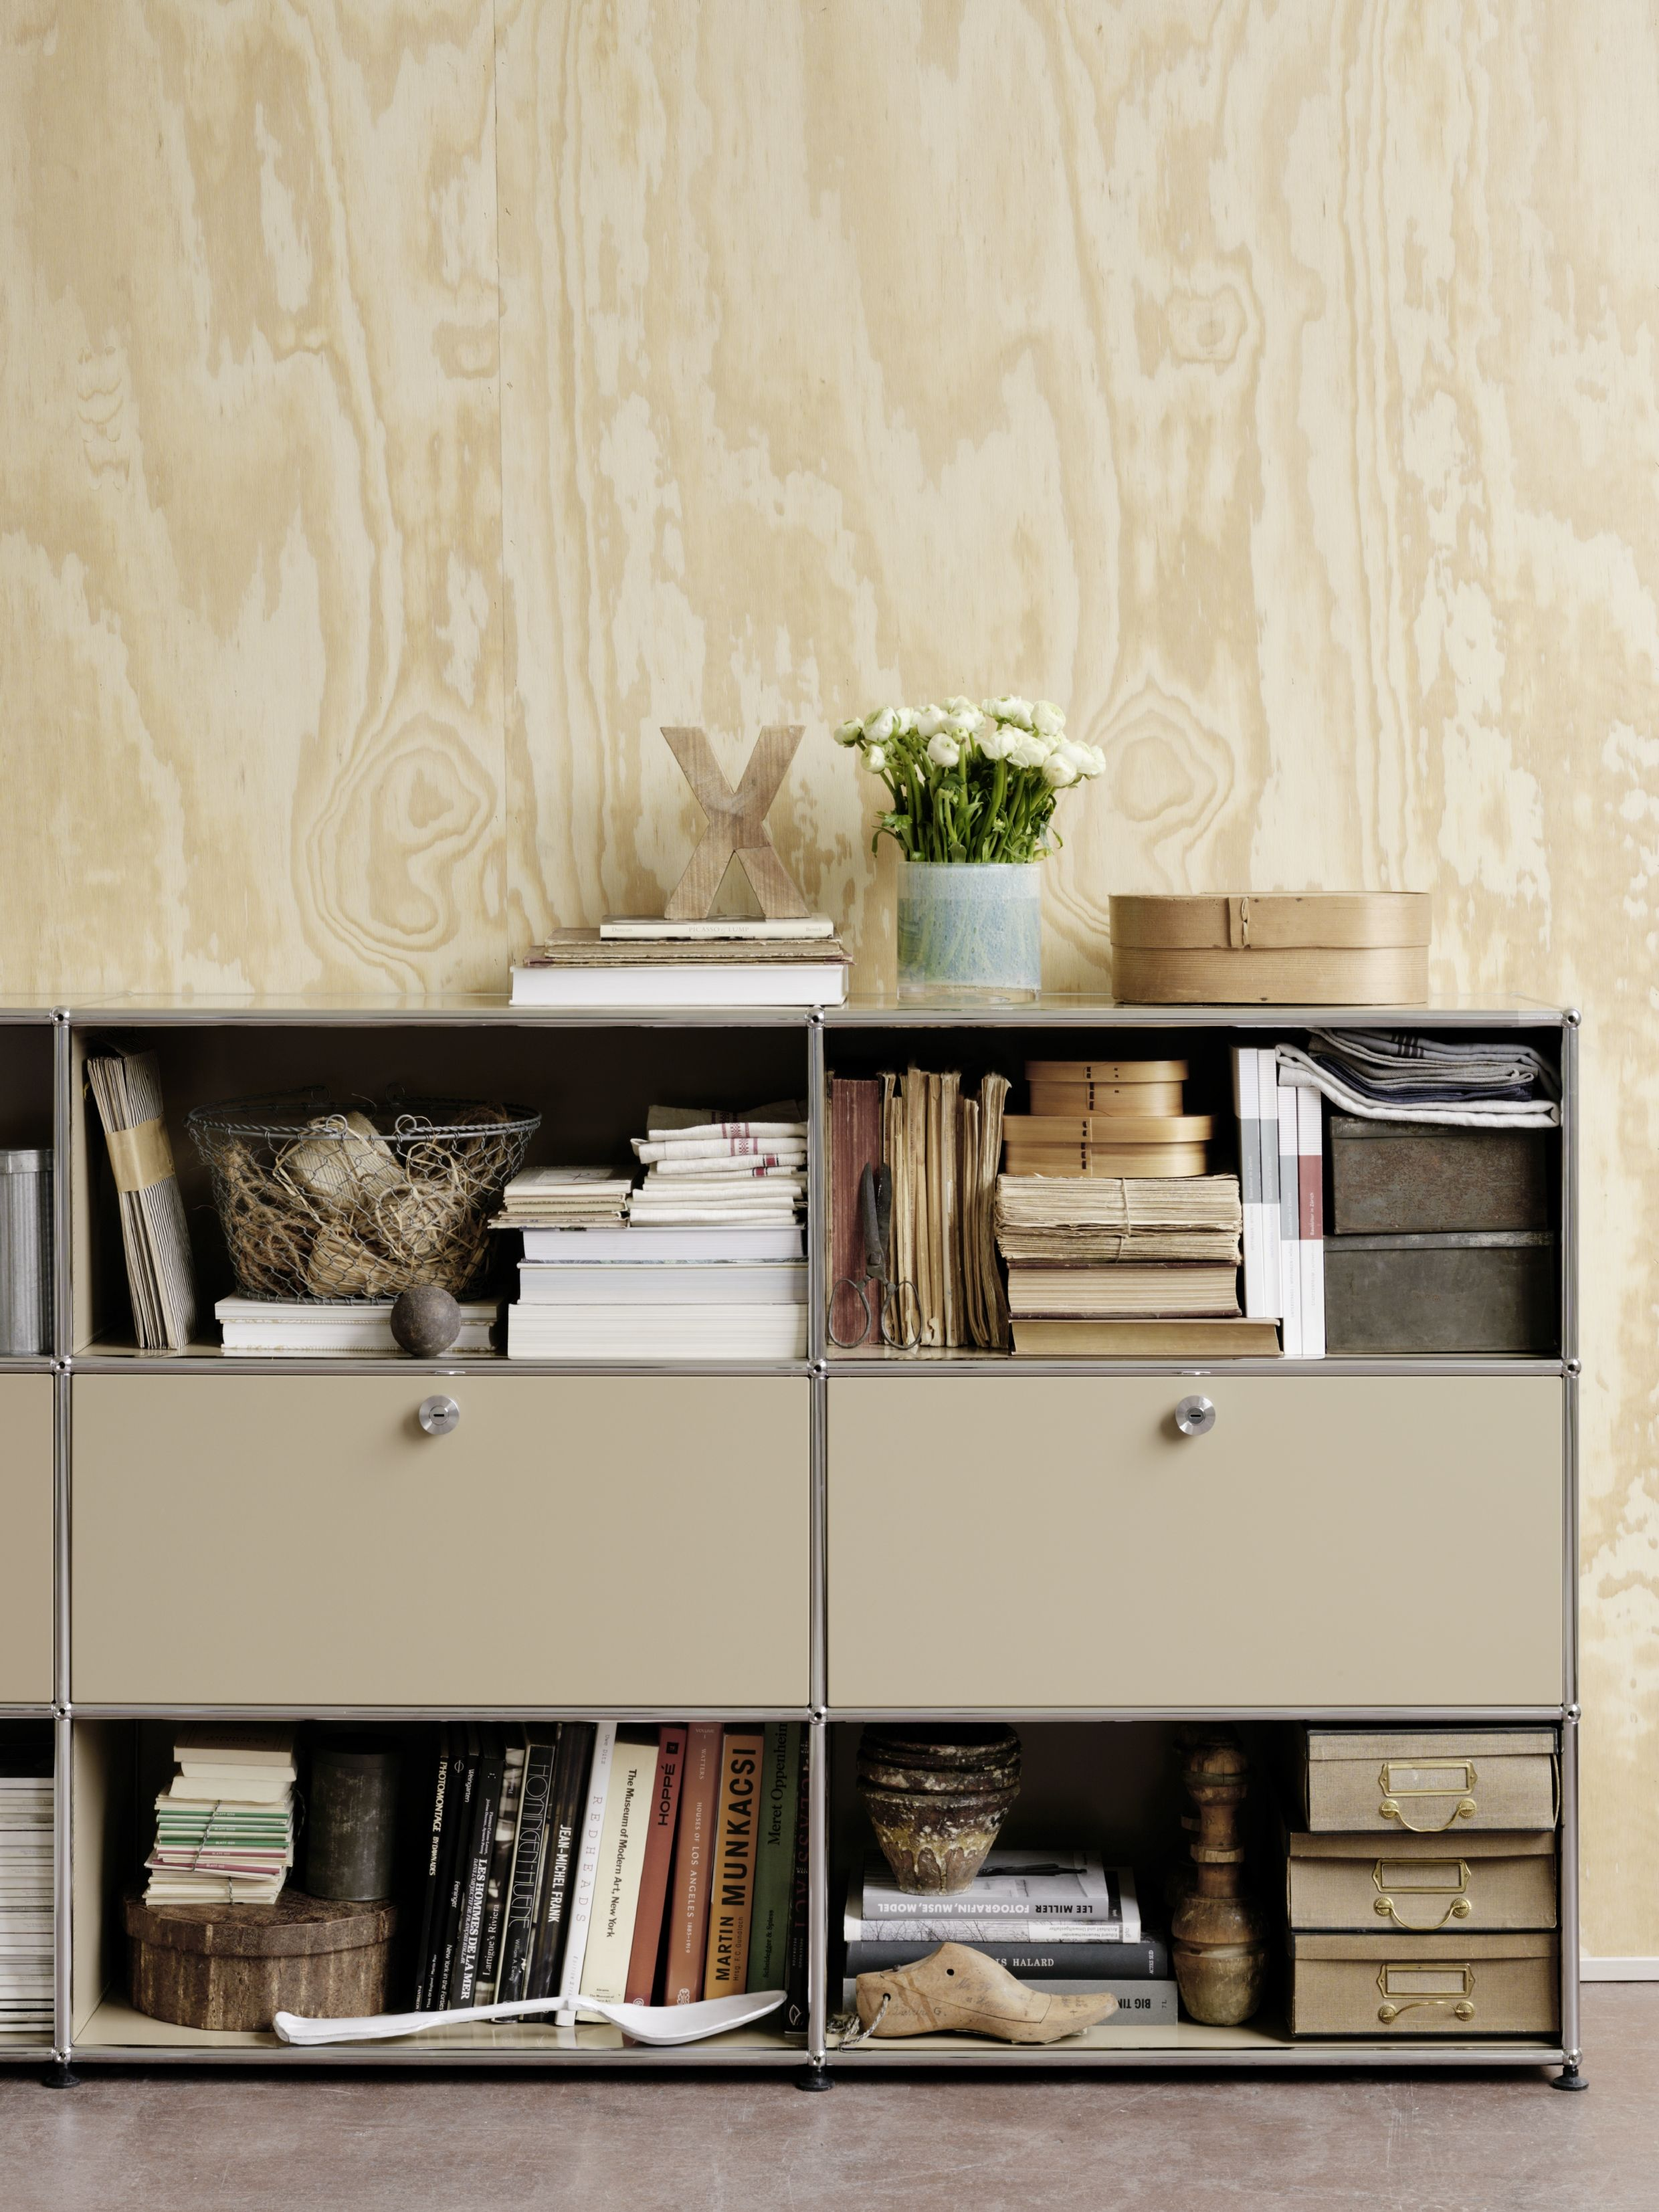 Sweet Home U S M In 2018 Pinterest Mobel Wohnzimmer And Mobel